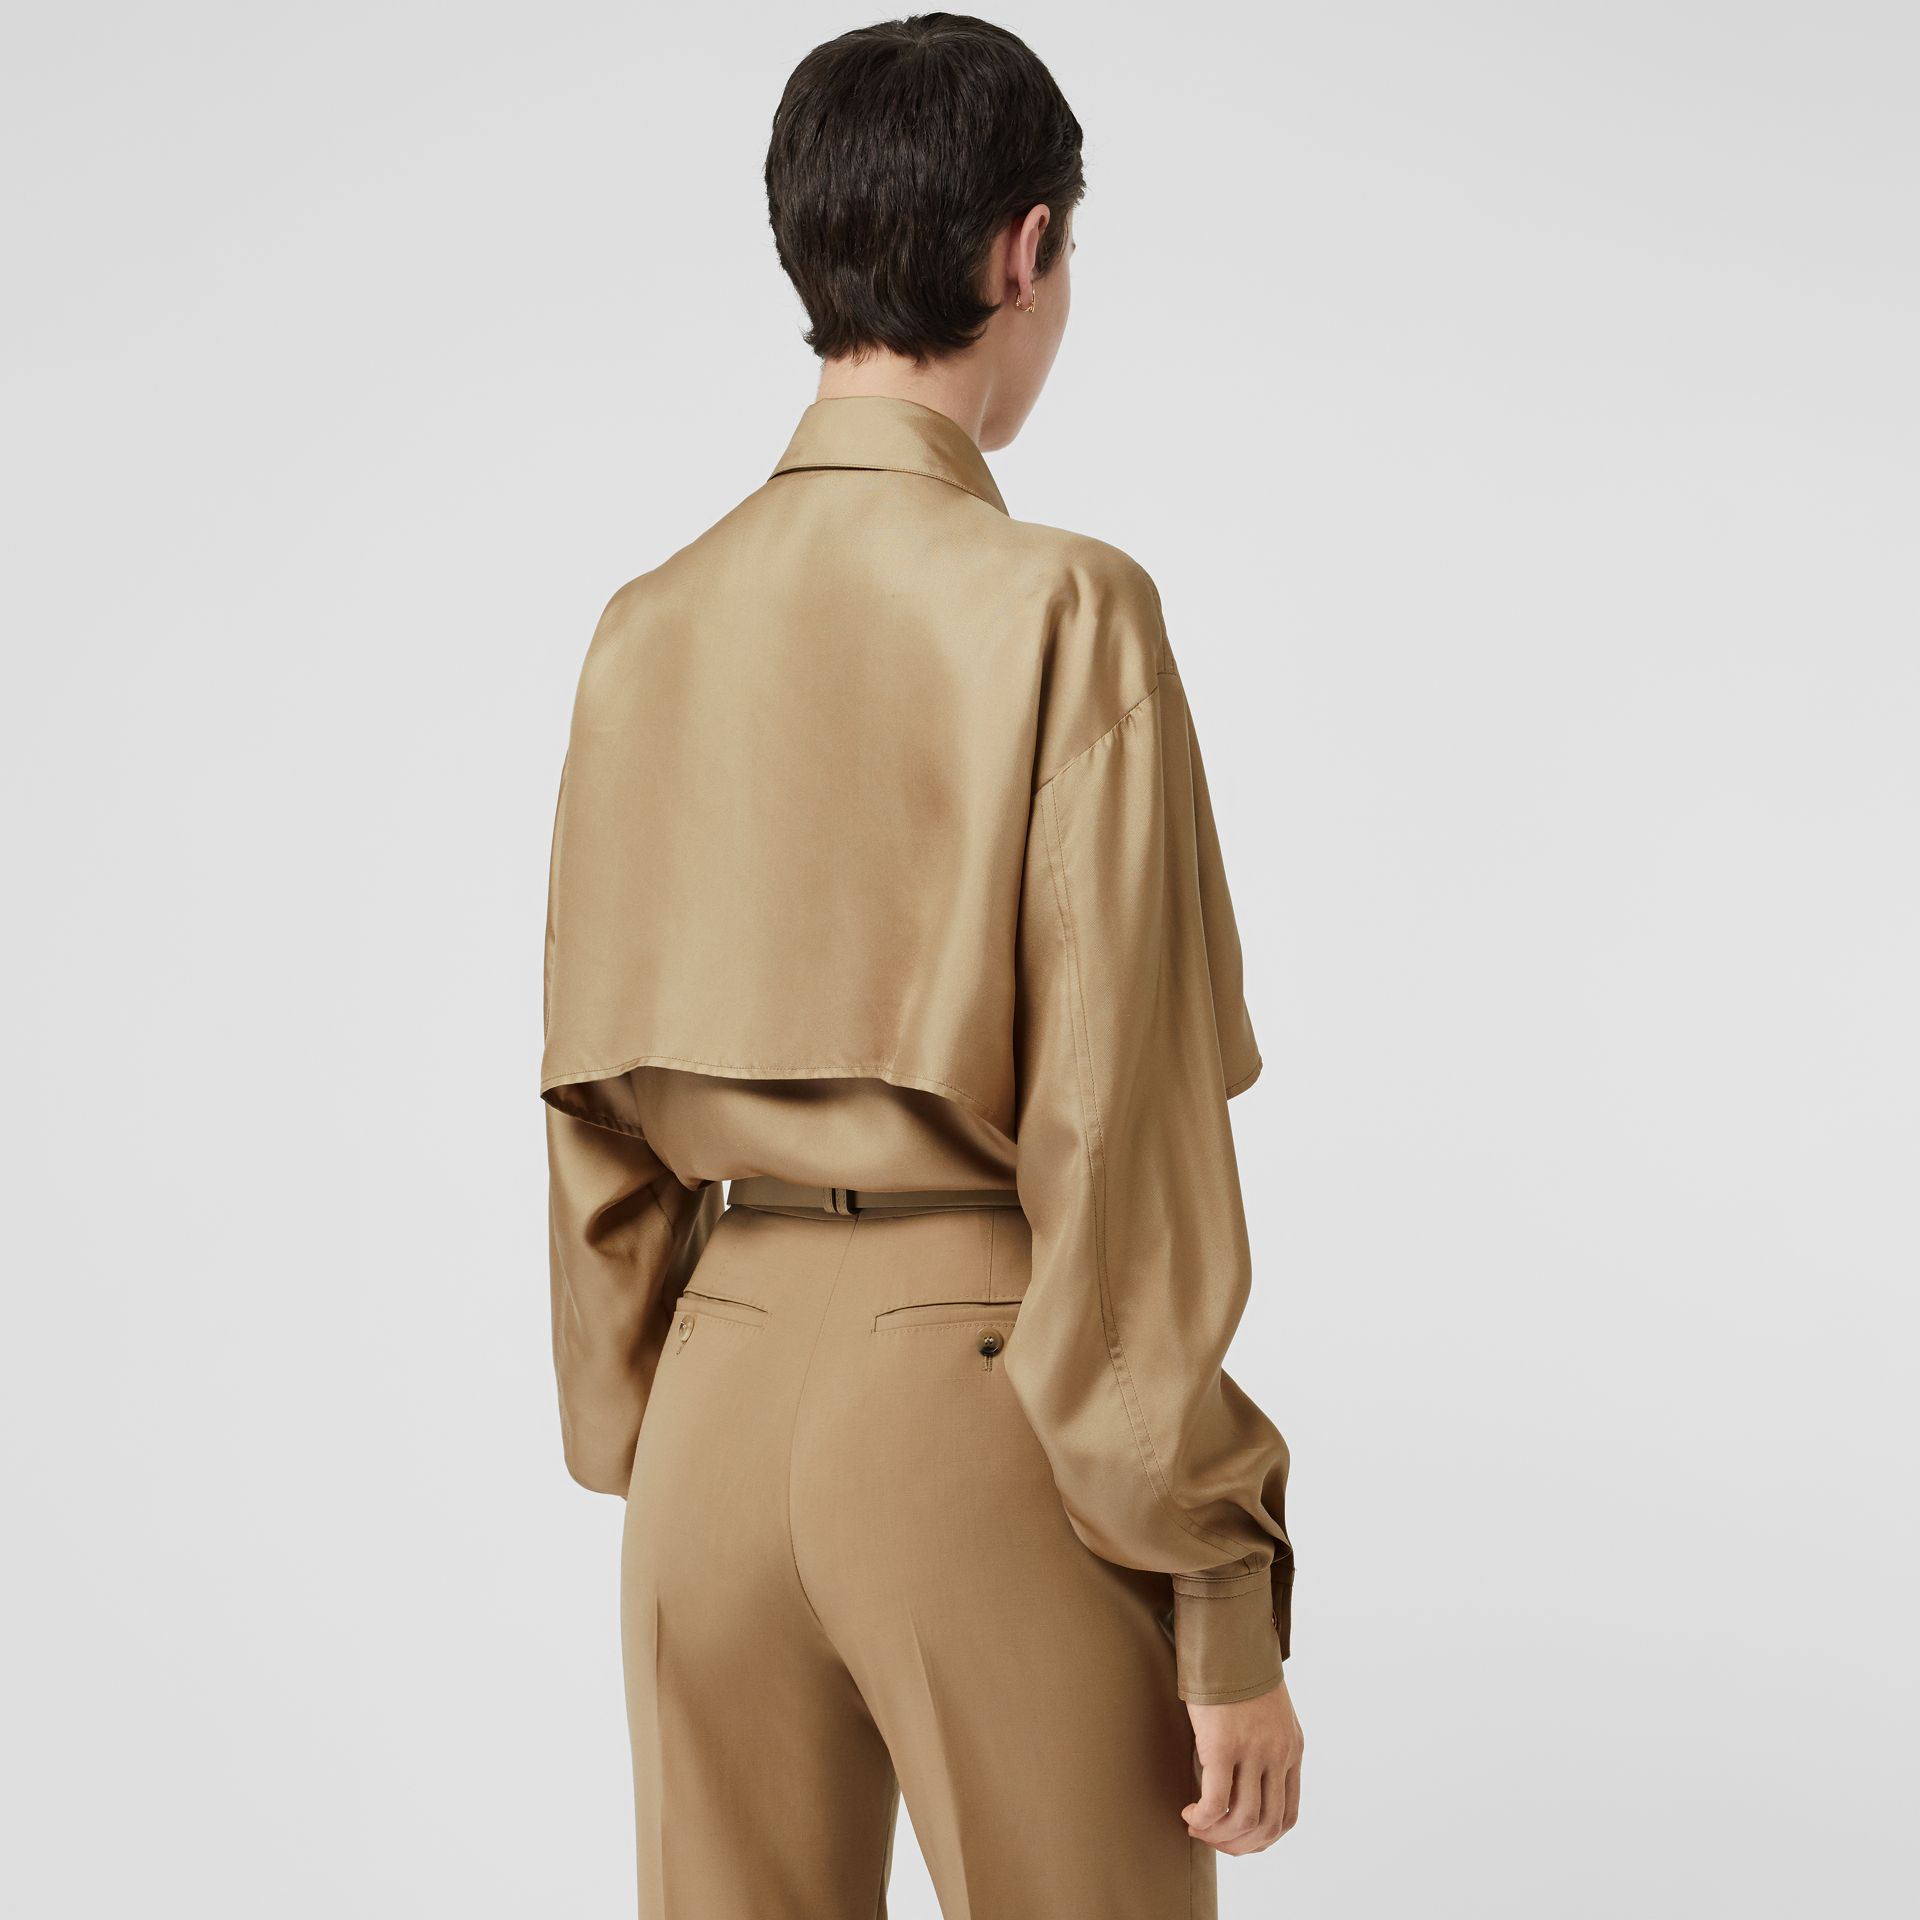 Cape Detail Silk Oversized Shirt in Honey - Women | Burberry - gallery image 2